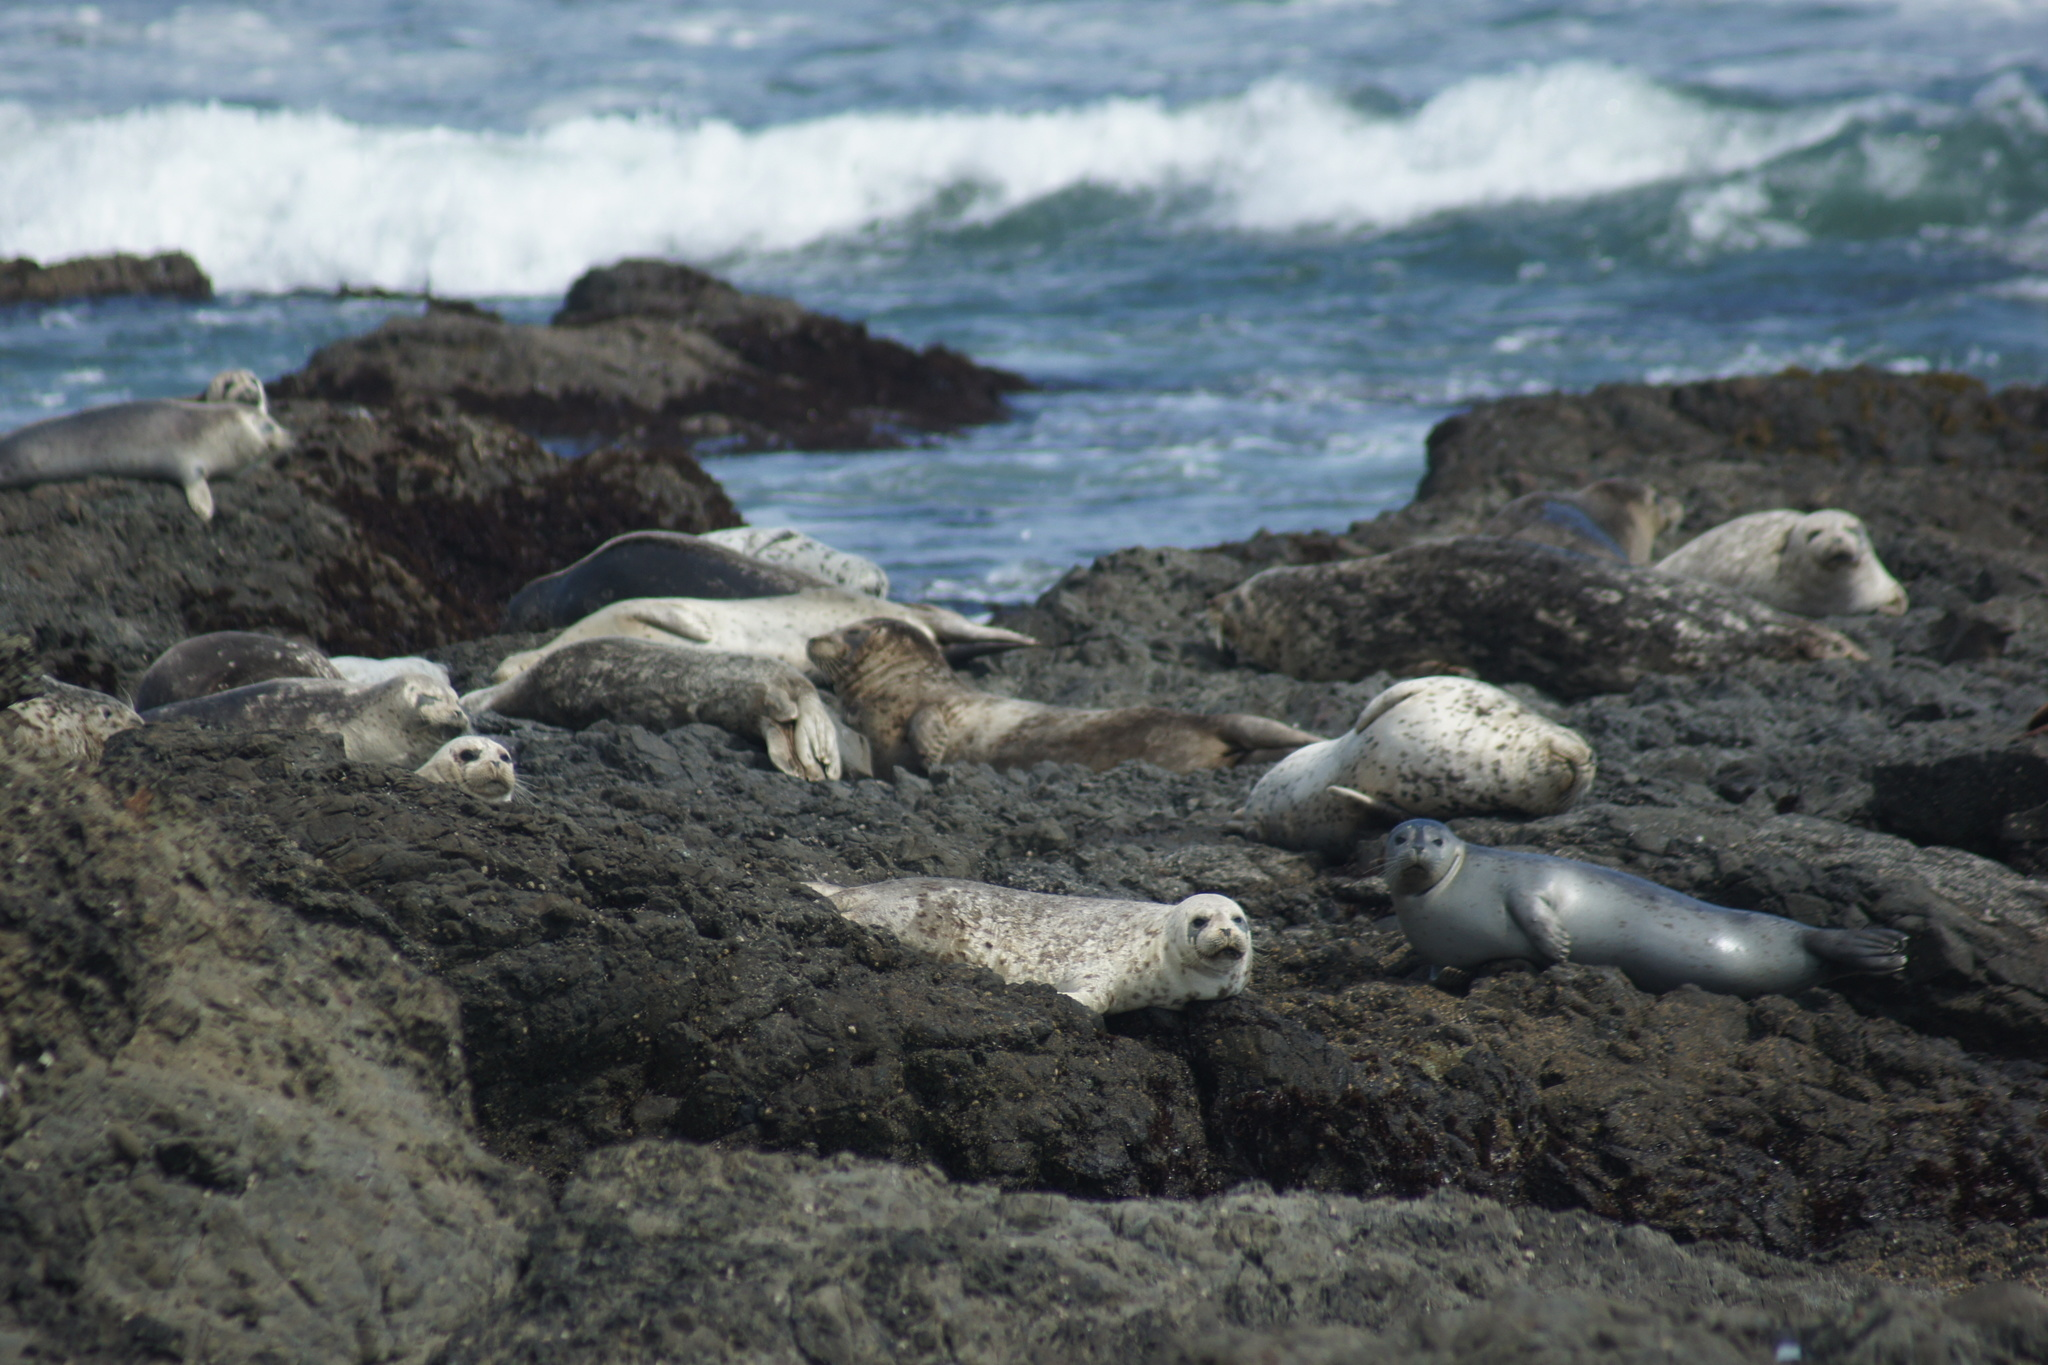 Image of Pacific harbor seal